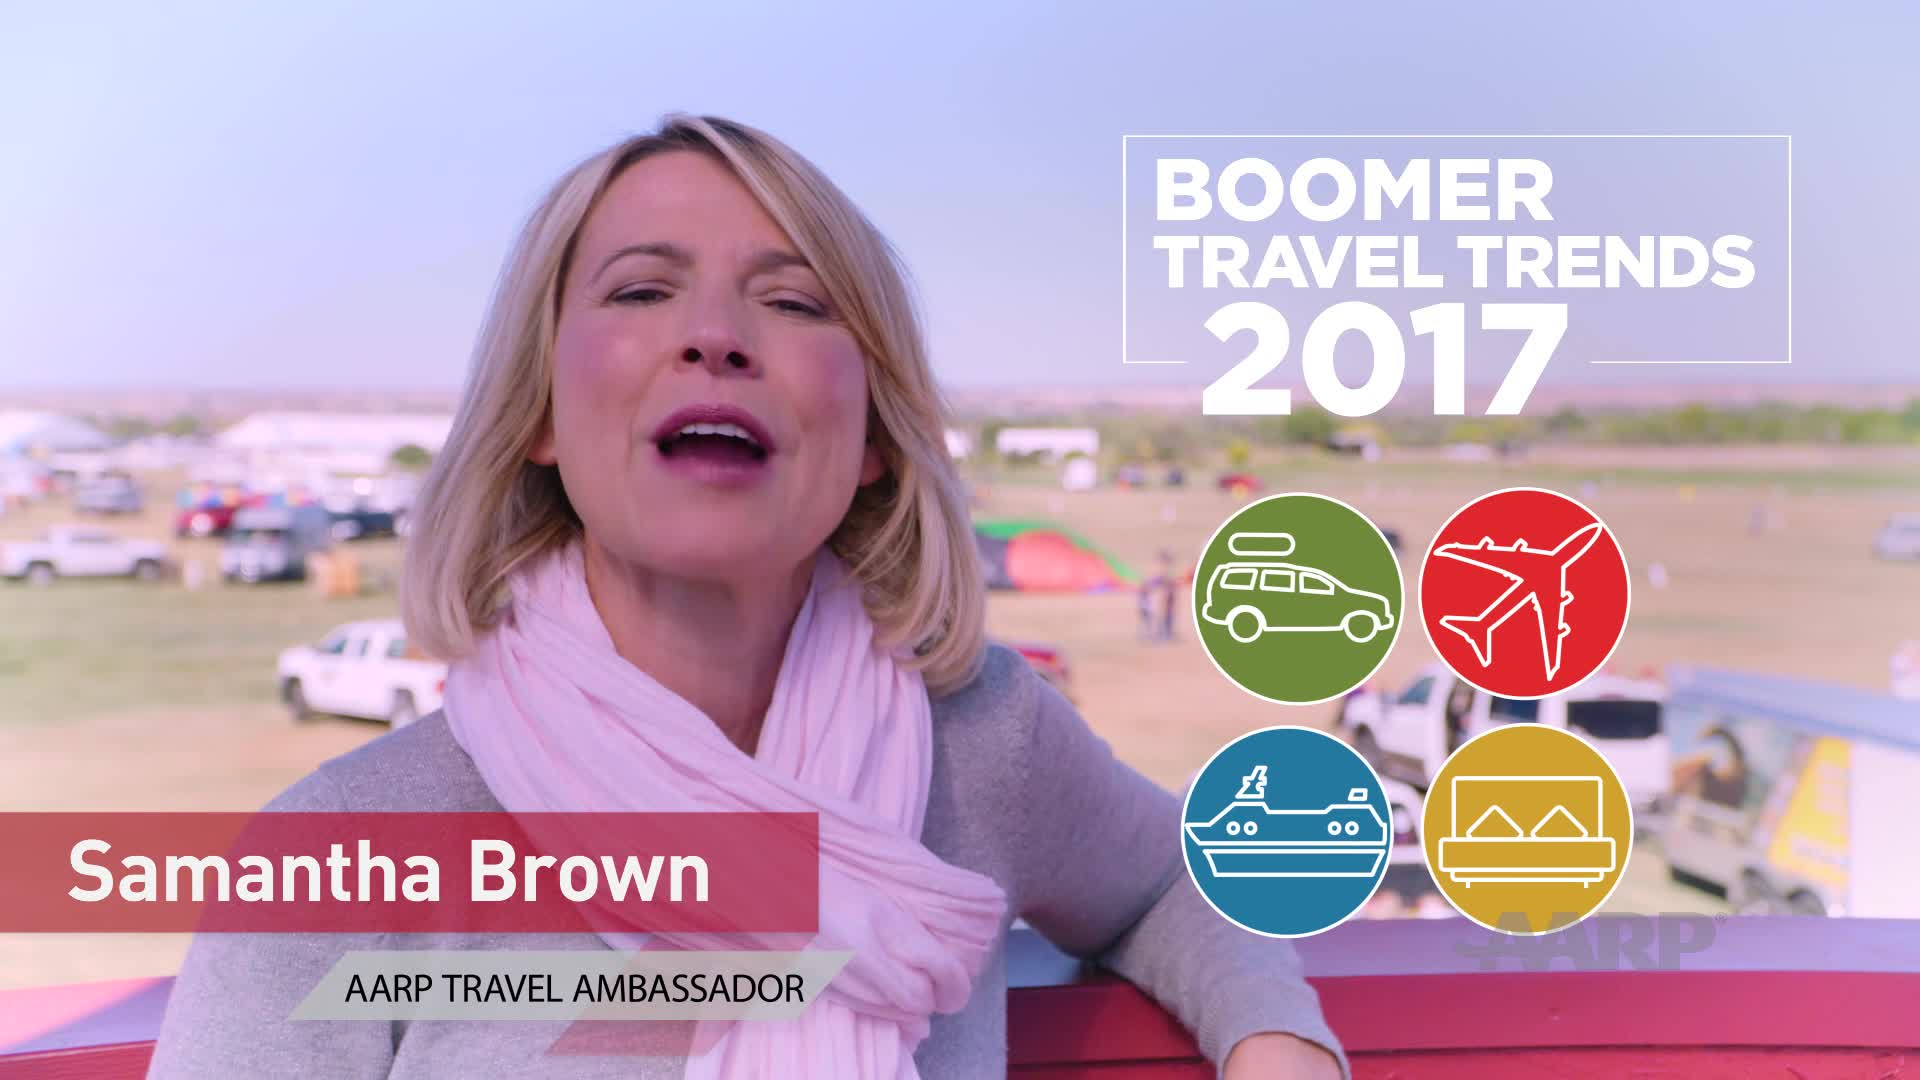 AARP 2017 Travel Trends Video with Samantha Brown